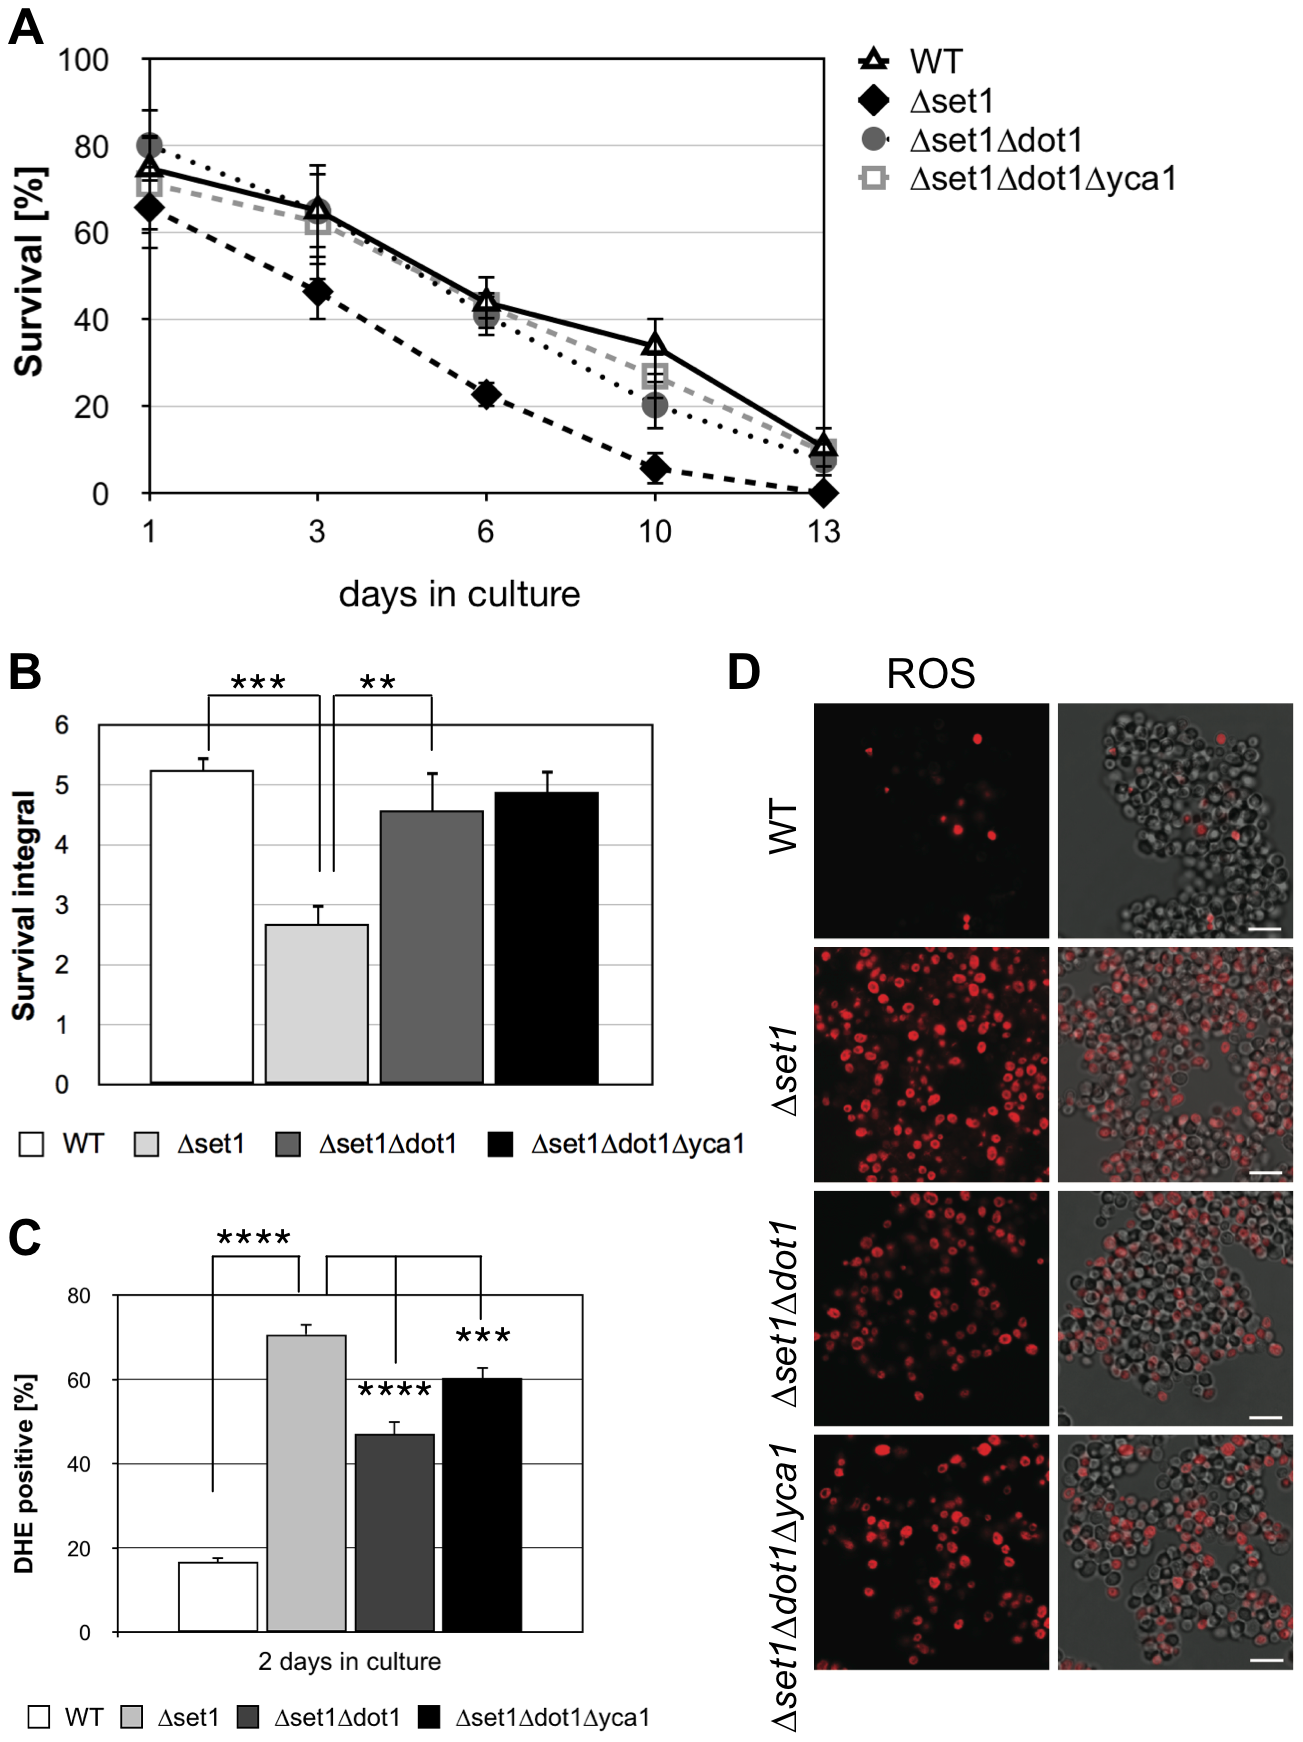 Dot1p is required for Yca1p-dependent cell death of <i>Δset1</i> cells.